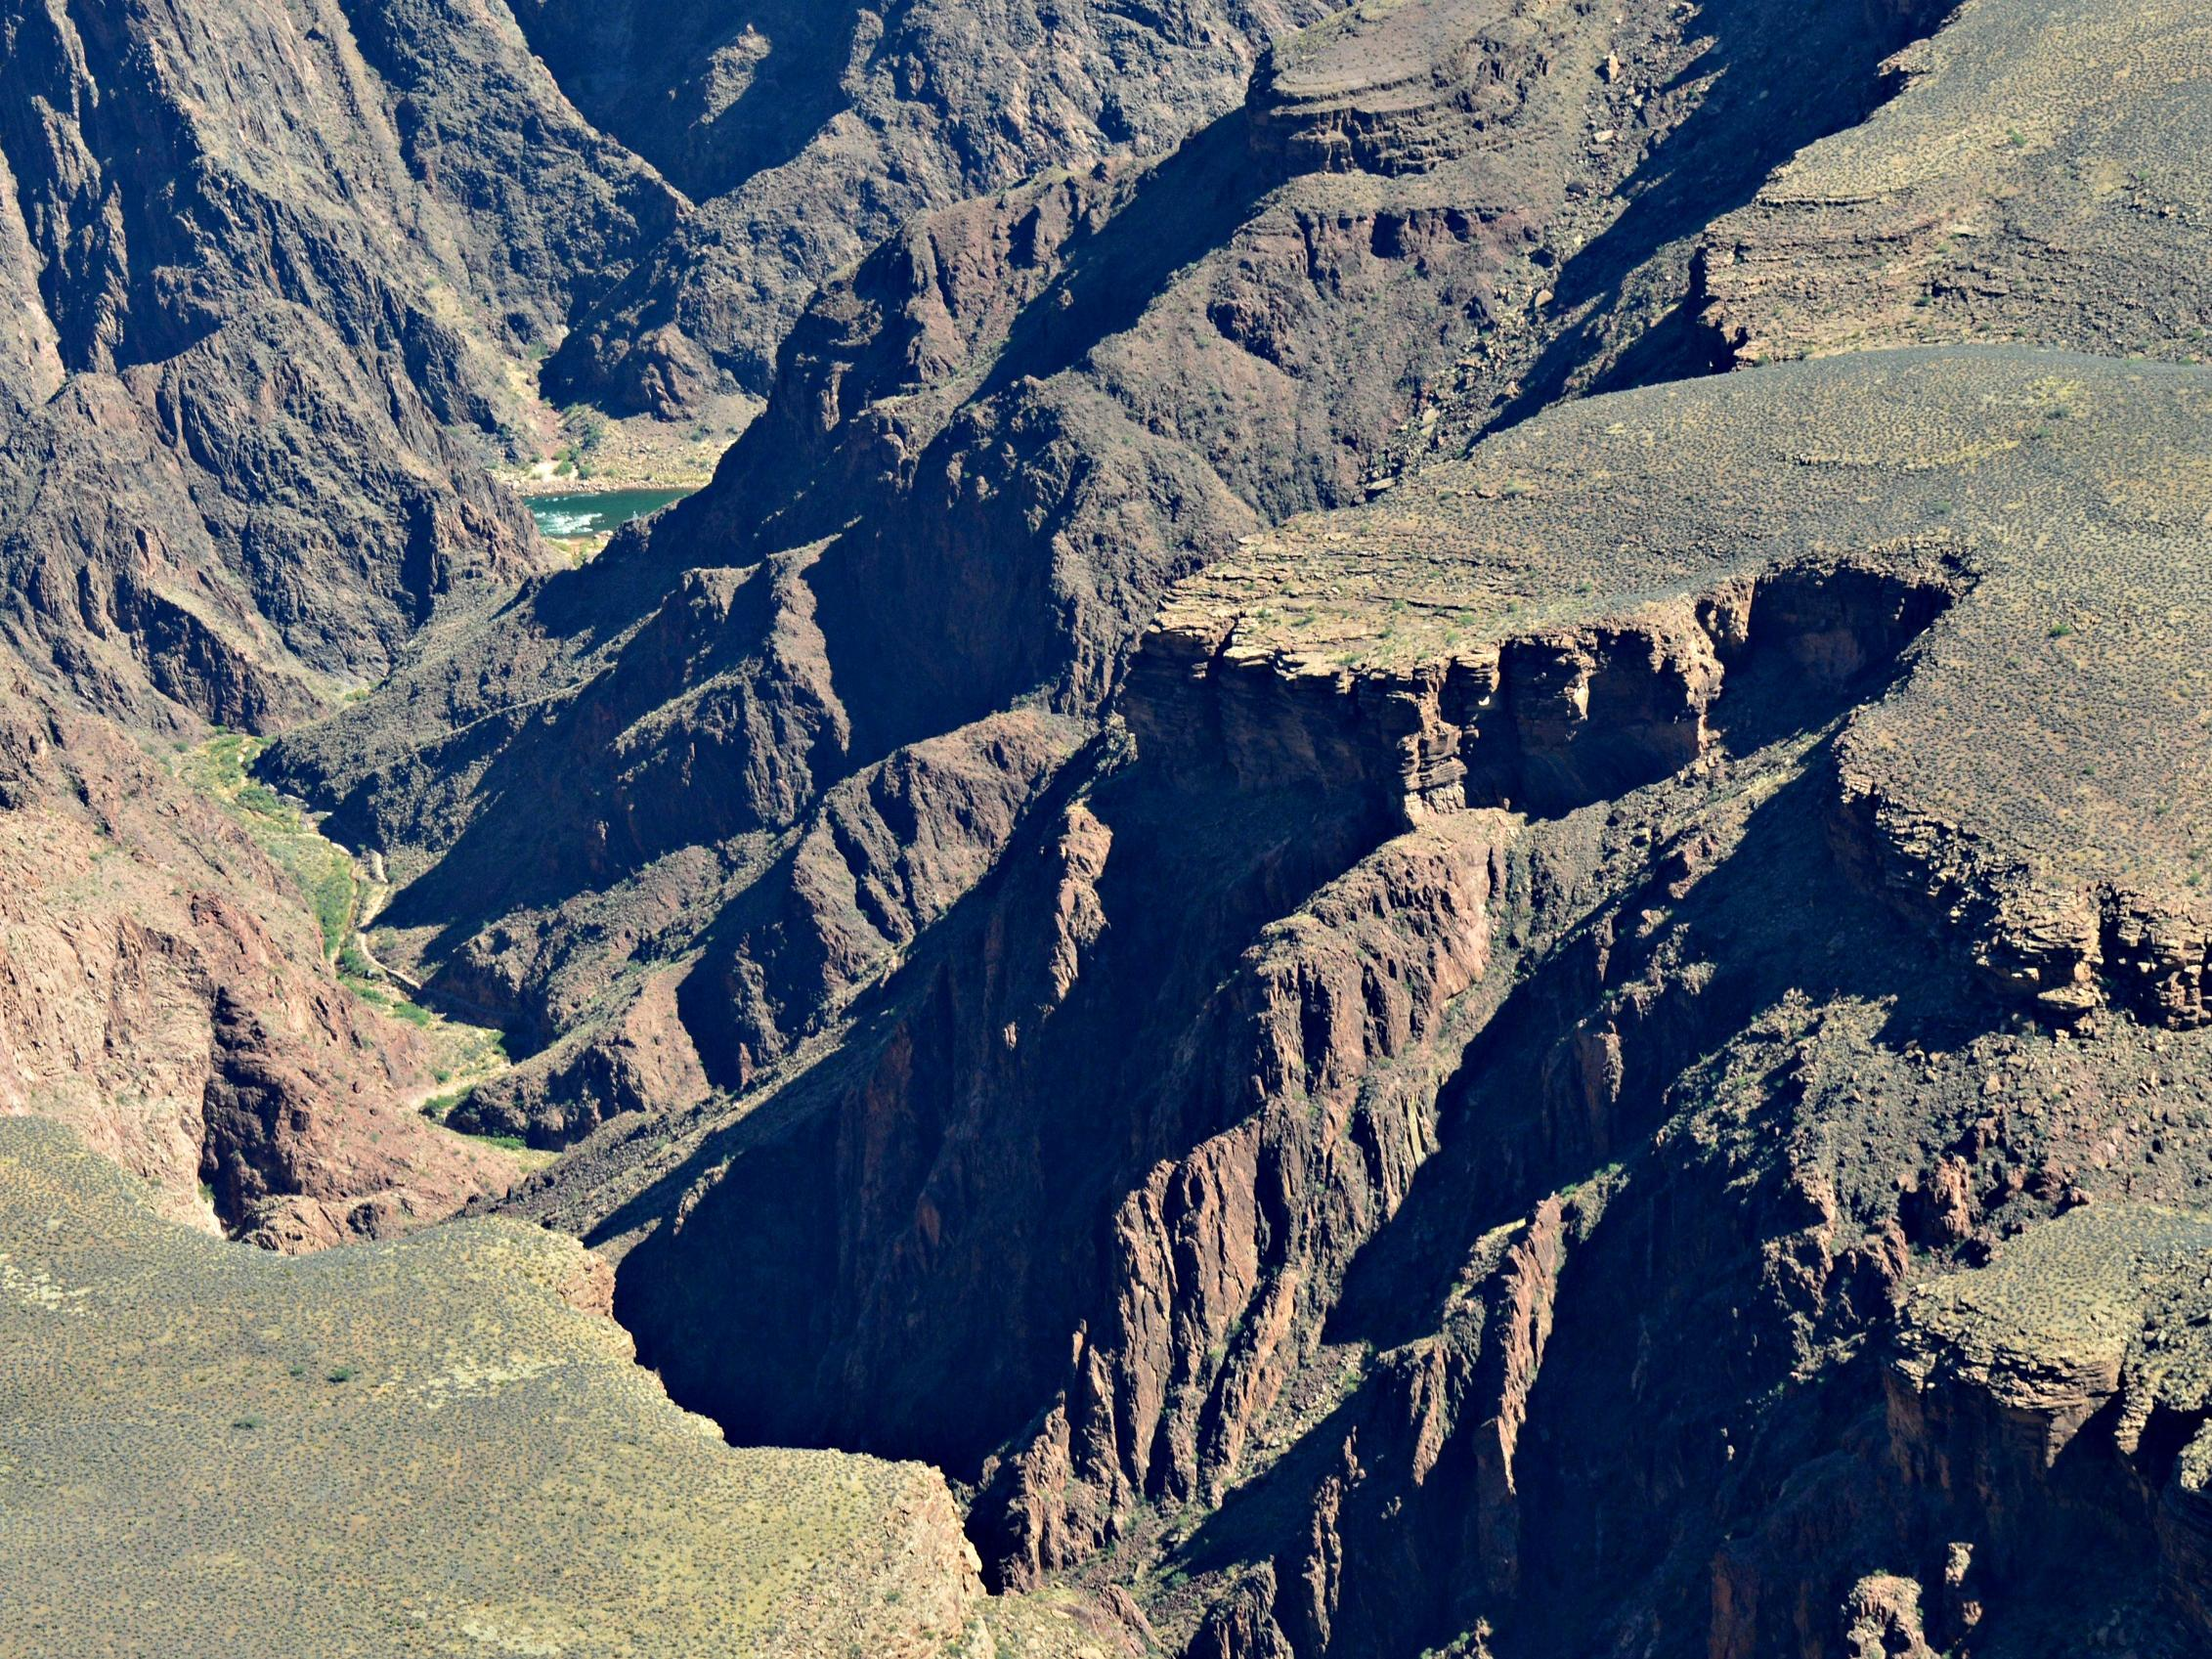 3-Day Las Vegas, Grand Canyon South Rim Tour from Los Angeles